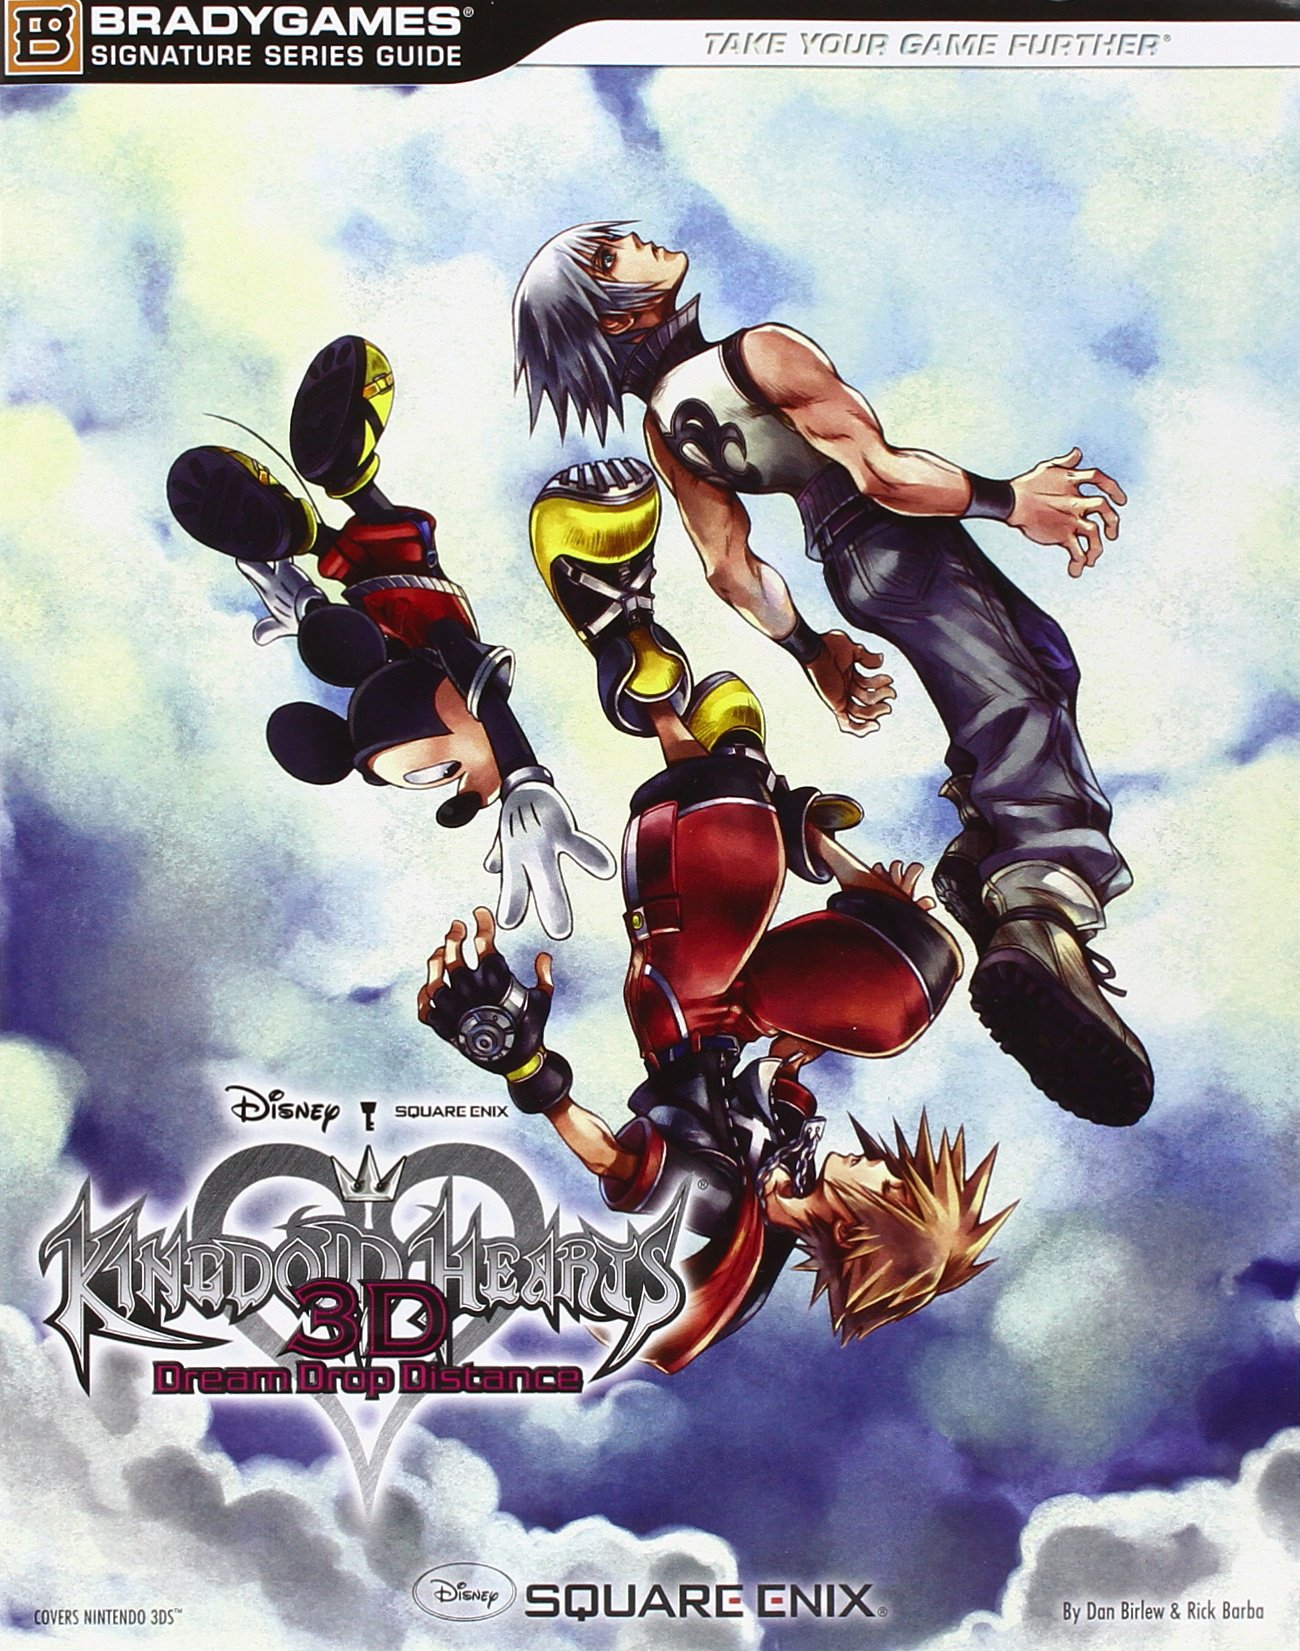 kingdom hearts 3d dream drop distance signature series guide rh amazon com kingdom hearts 2 limited edition strategy guide kingdom hearts 2 official strategy guide